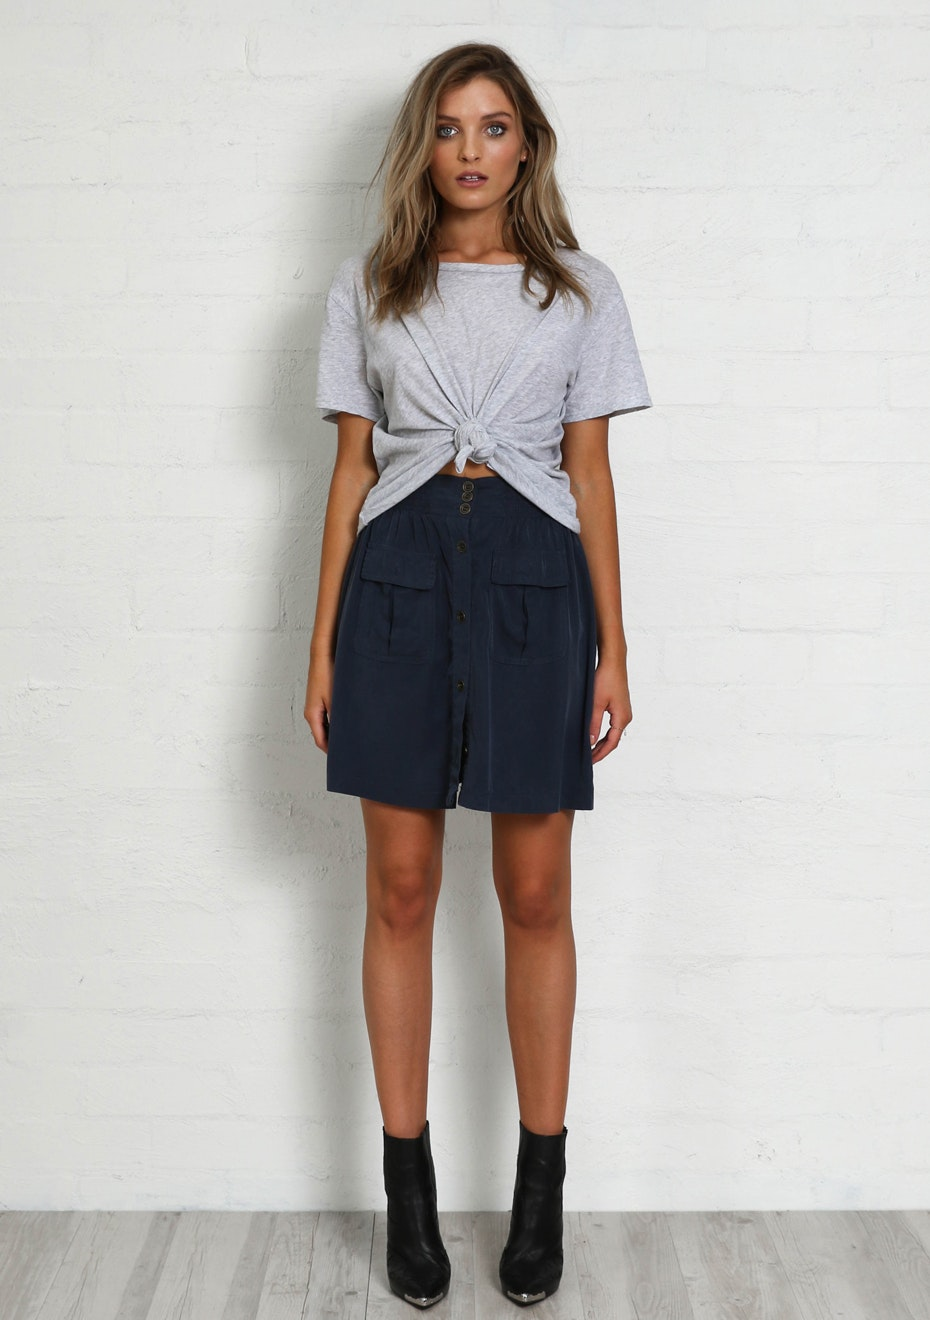 Madison - SAMARA SKIRT - NAVY